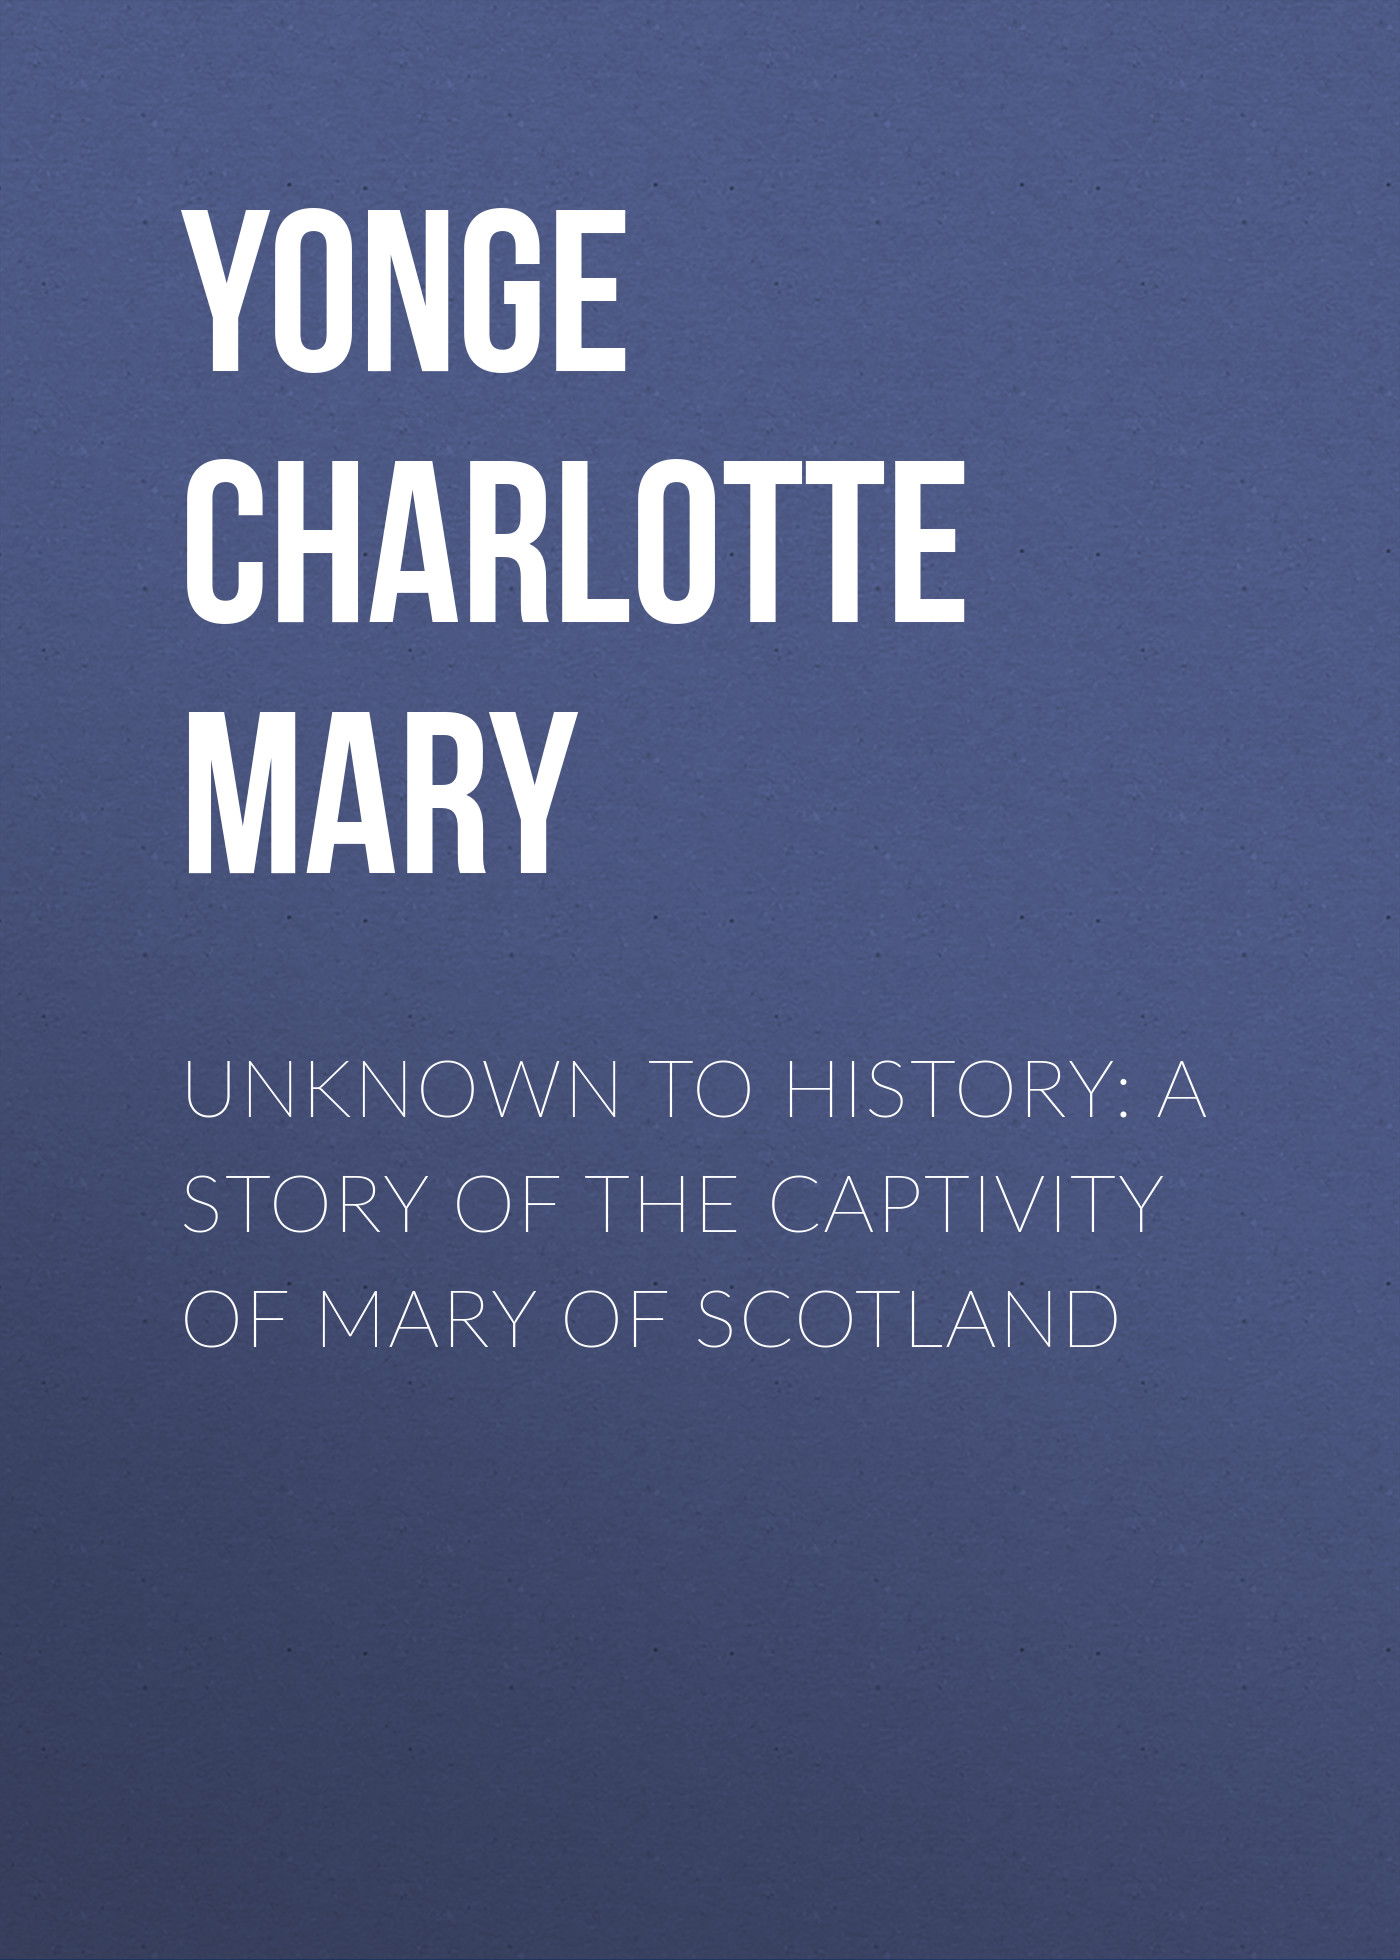 Yonge Charlotte Mary Unknown to History: A Story of the Captivity of Mary of Scotland yonge charlotte mary countess kate